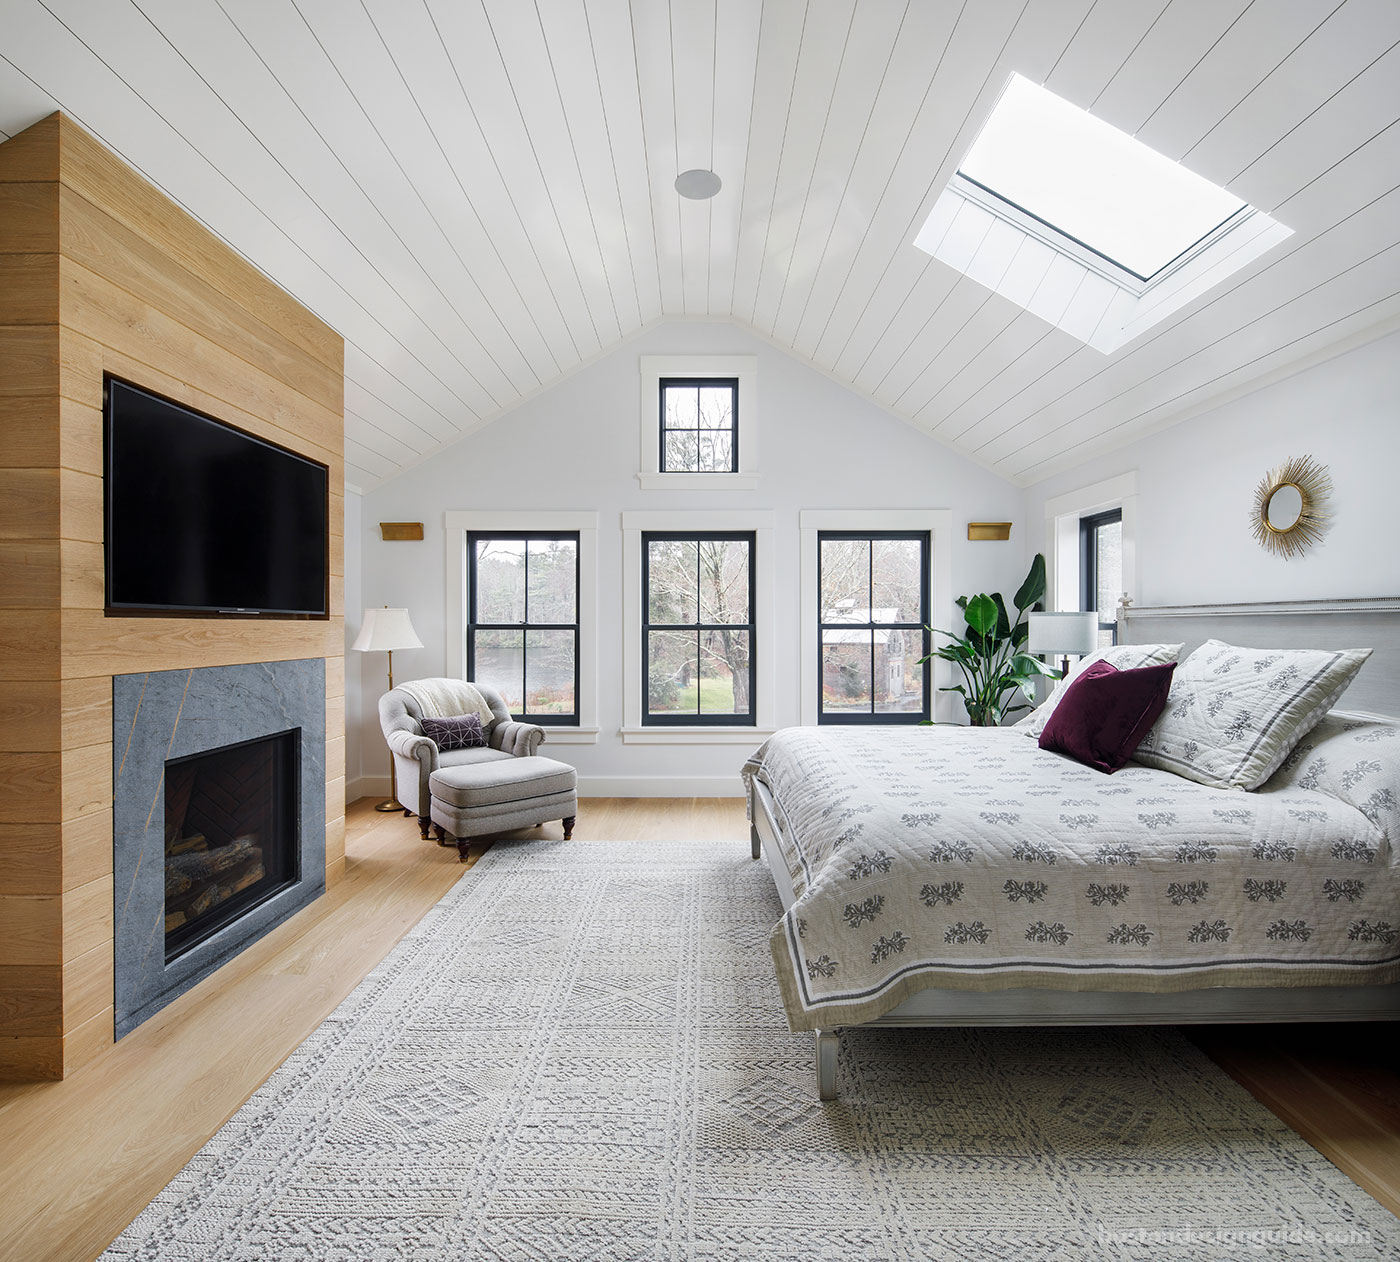 Master bedroom by custom home builder McCormack Buiilders with nickel gap wood paneling